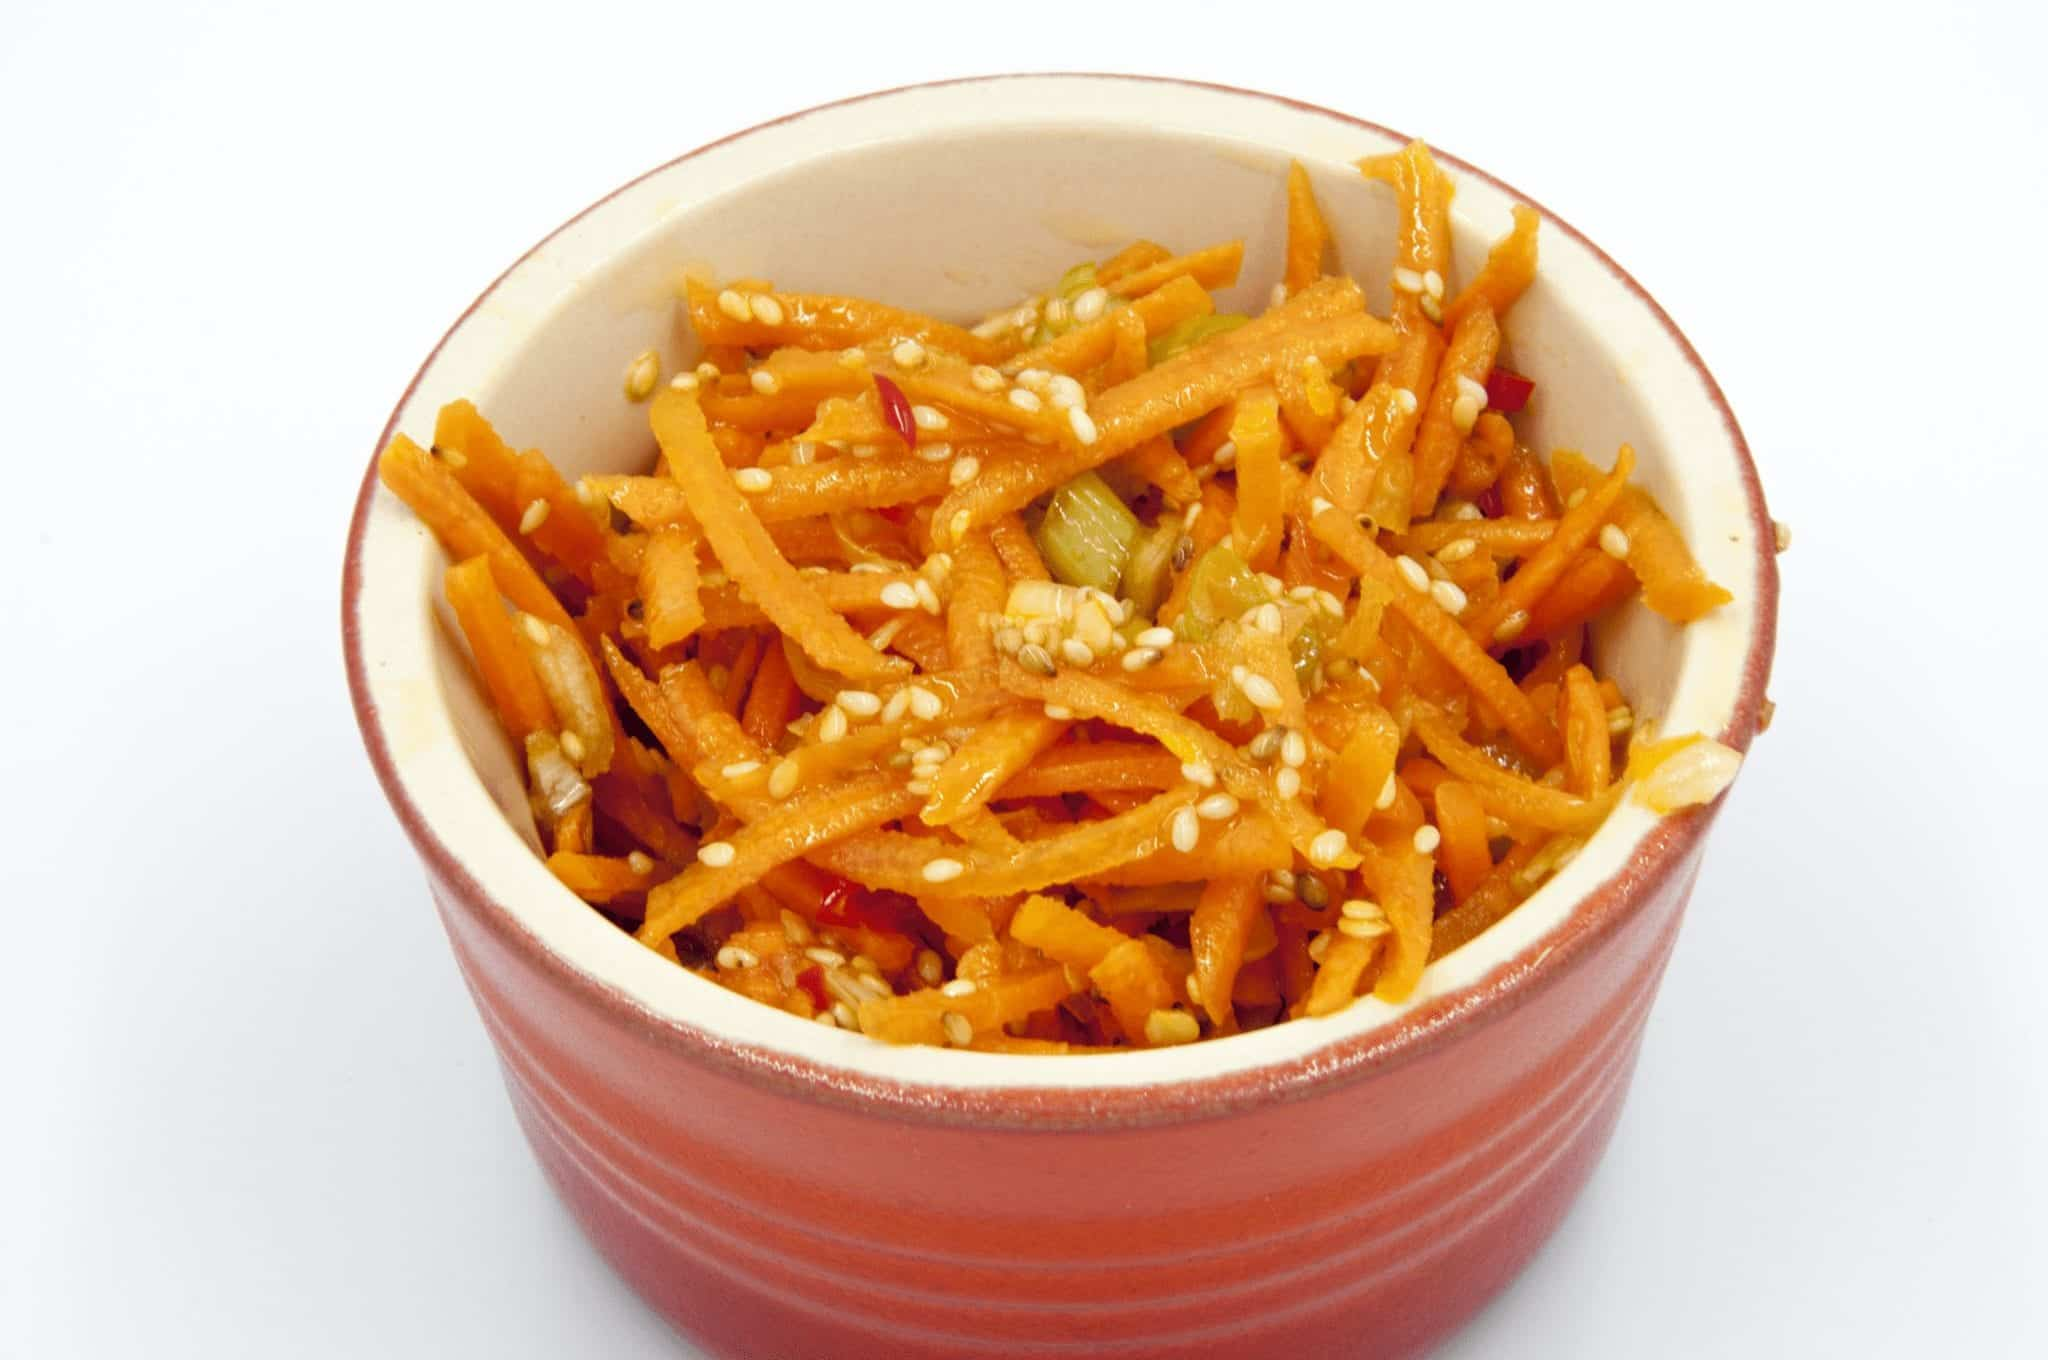 This spicy carrot, sesame and scallion salad is so simple and so healthy. 3 ingredients for the salad, 4 ingredeints for the spicy dressing, and just over 200 calories per bowl. Yum! | theyumyumclub.com